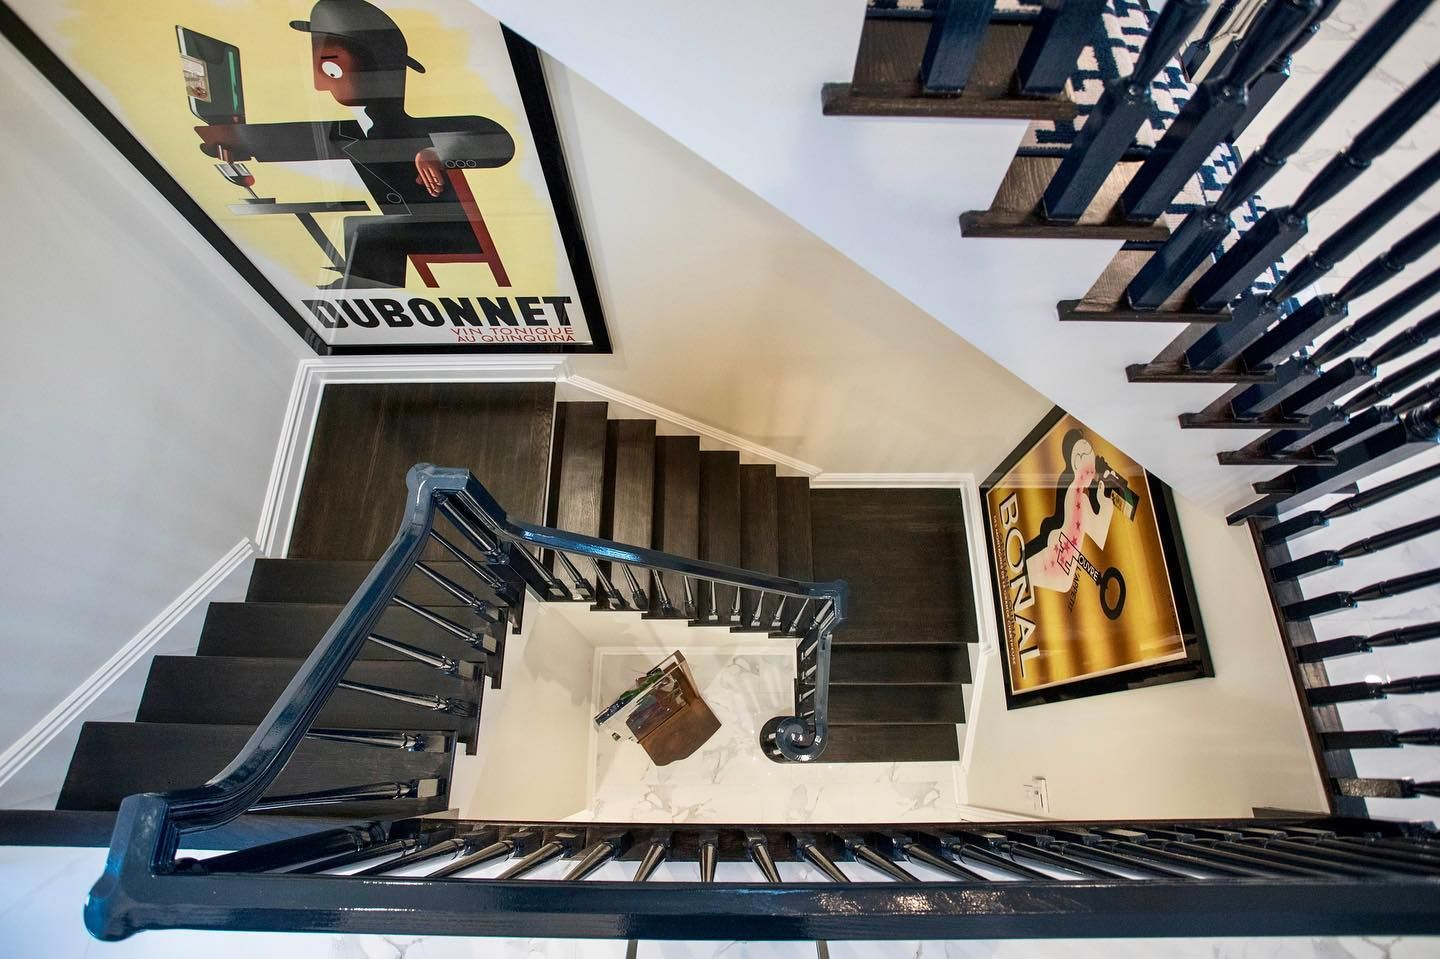 A stairwell with a view in a recently designed townhouse project . . . #design #decor #interiordecor #interiordesign #interiors #newjersey #westpalmbeach #florida #designinspo #designinspiration #homesofig #homesofinstagram #homedecoration #style #homedesigns #stayathome #familyroom #art #stairs #stairwell #artistsoninstagram #view #views